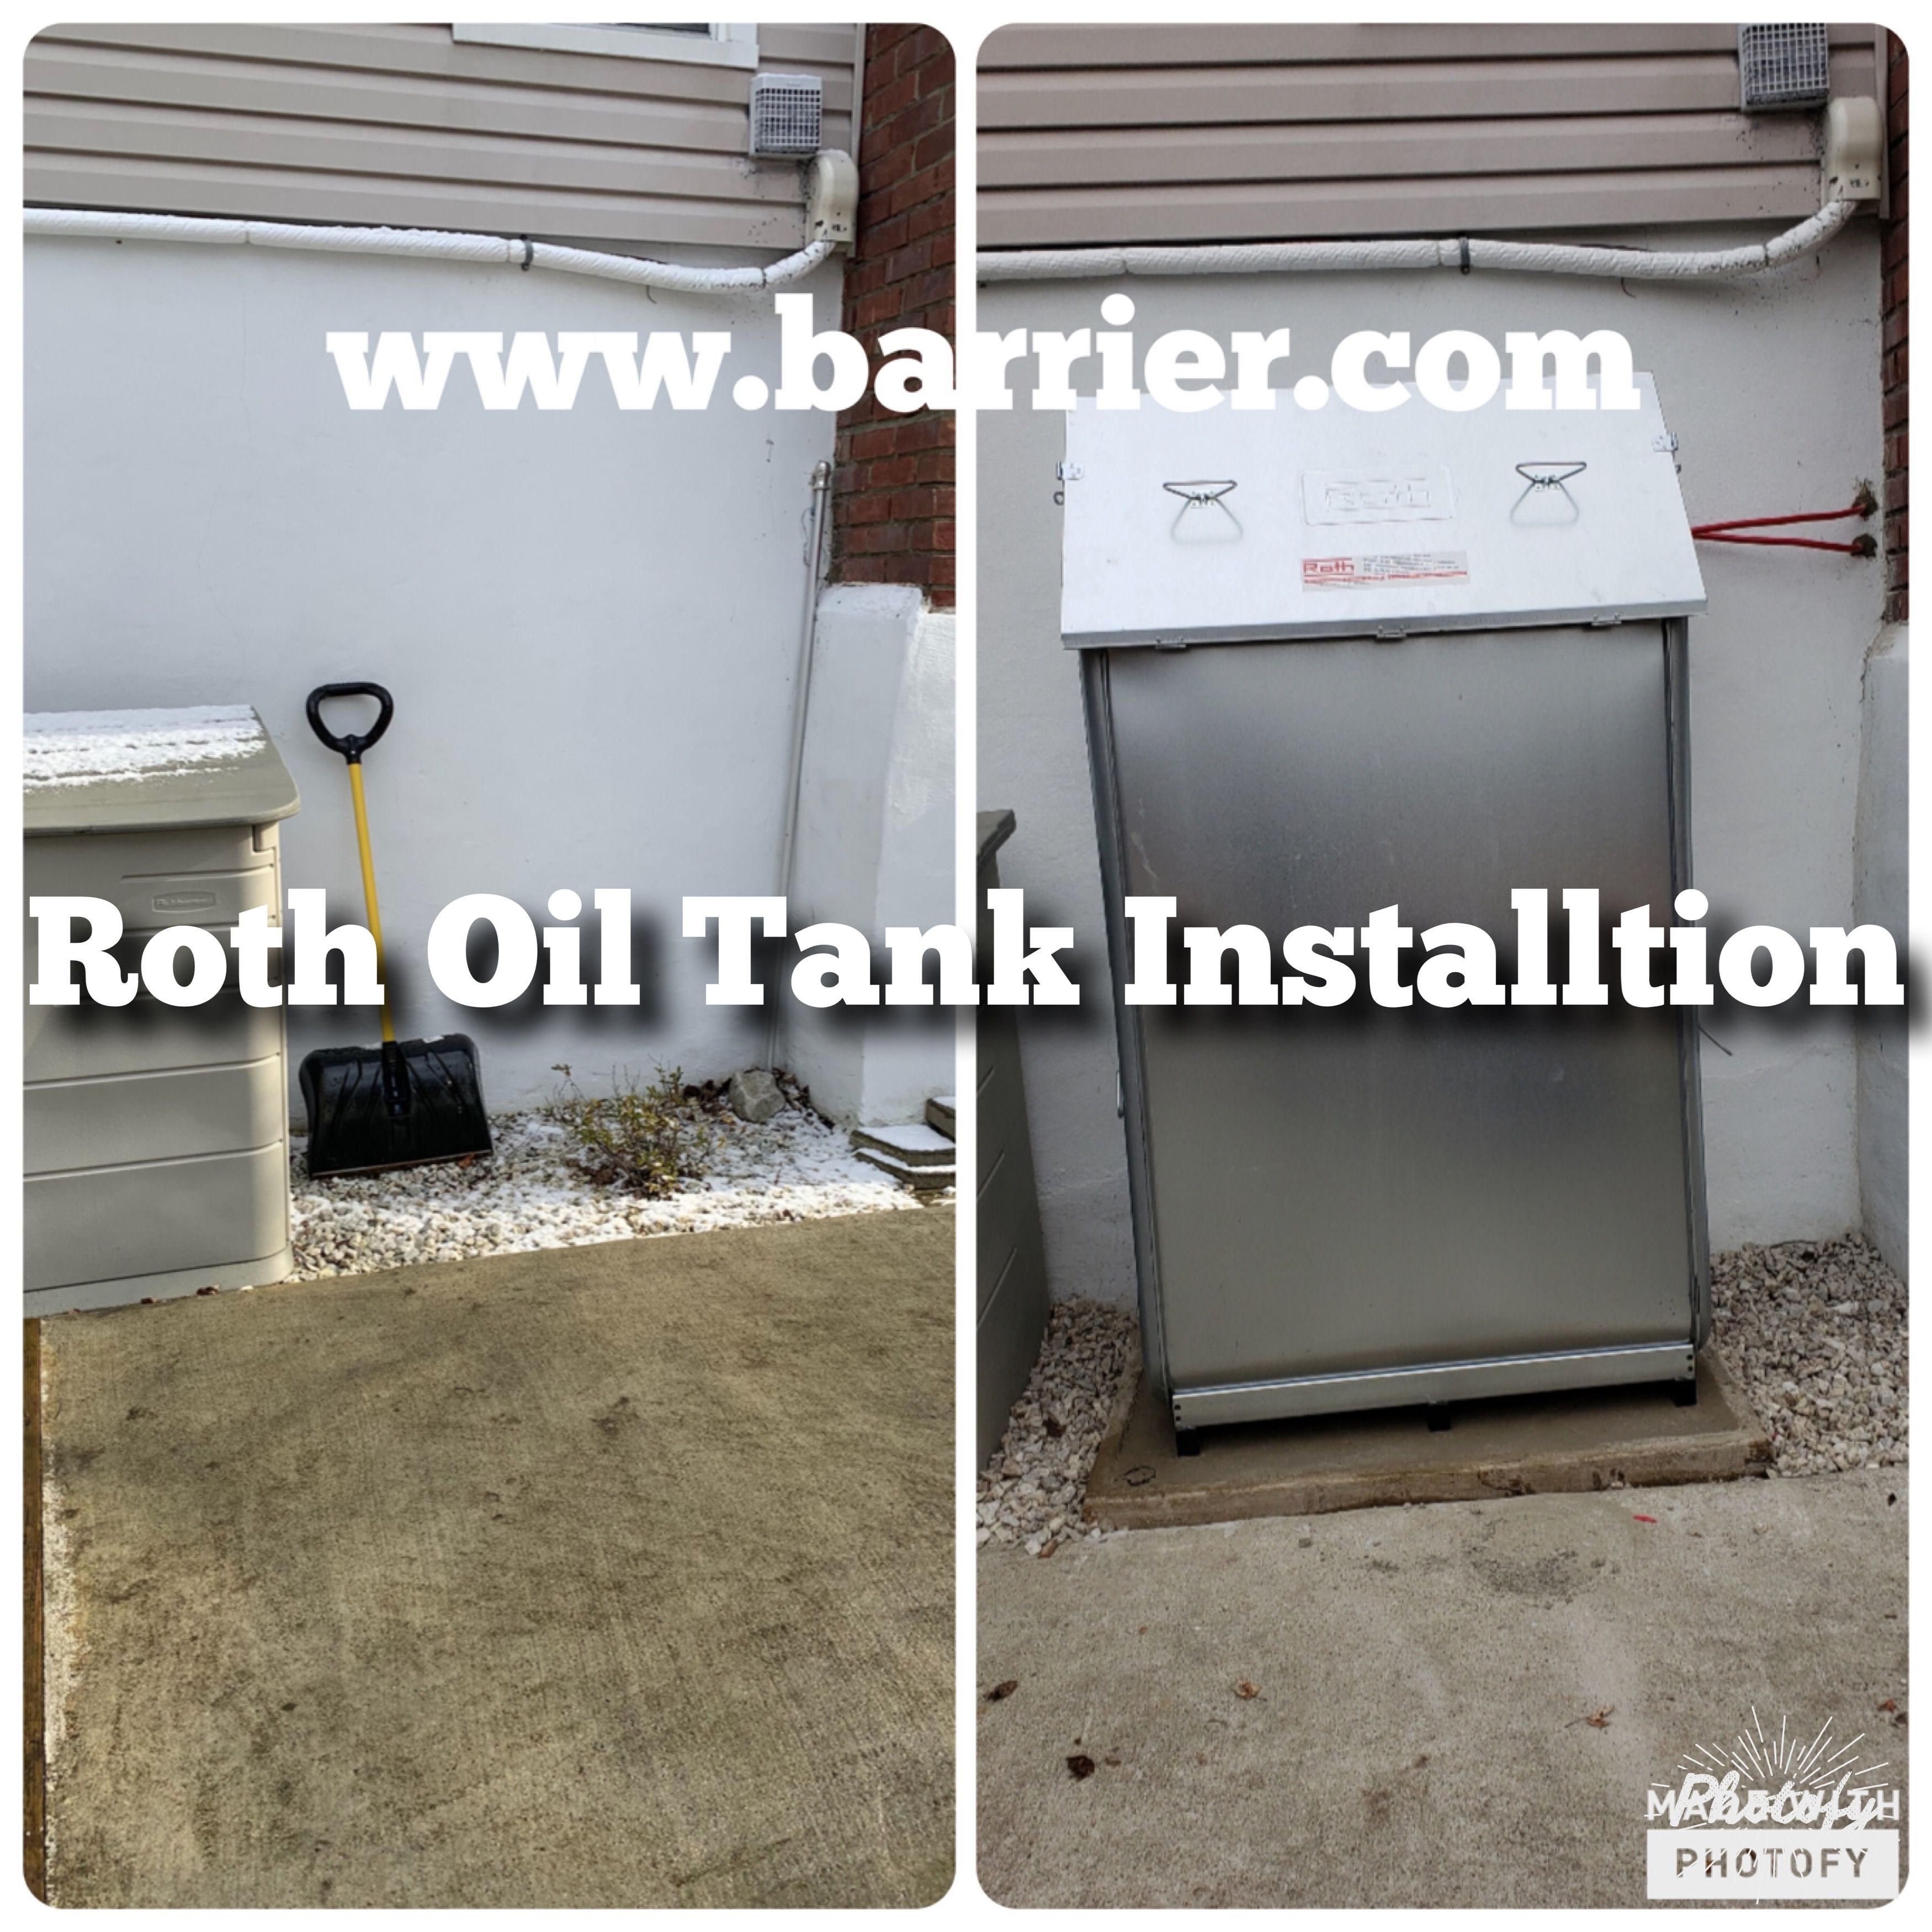 Barrier Contracting Installs Roth Above Ground Oil Tanks That Provide Dual Double Wall Tanks To Provide Secondary Containm In 2020 Wall Putnam County